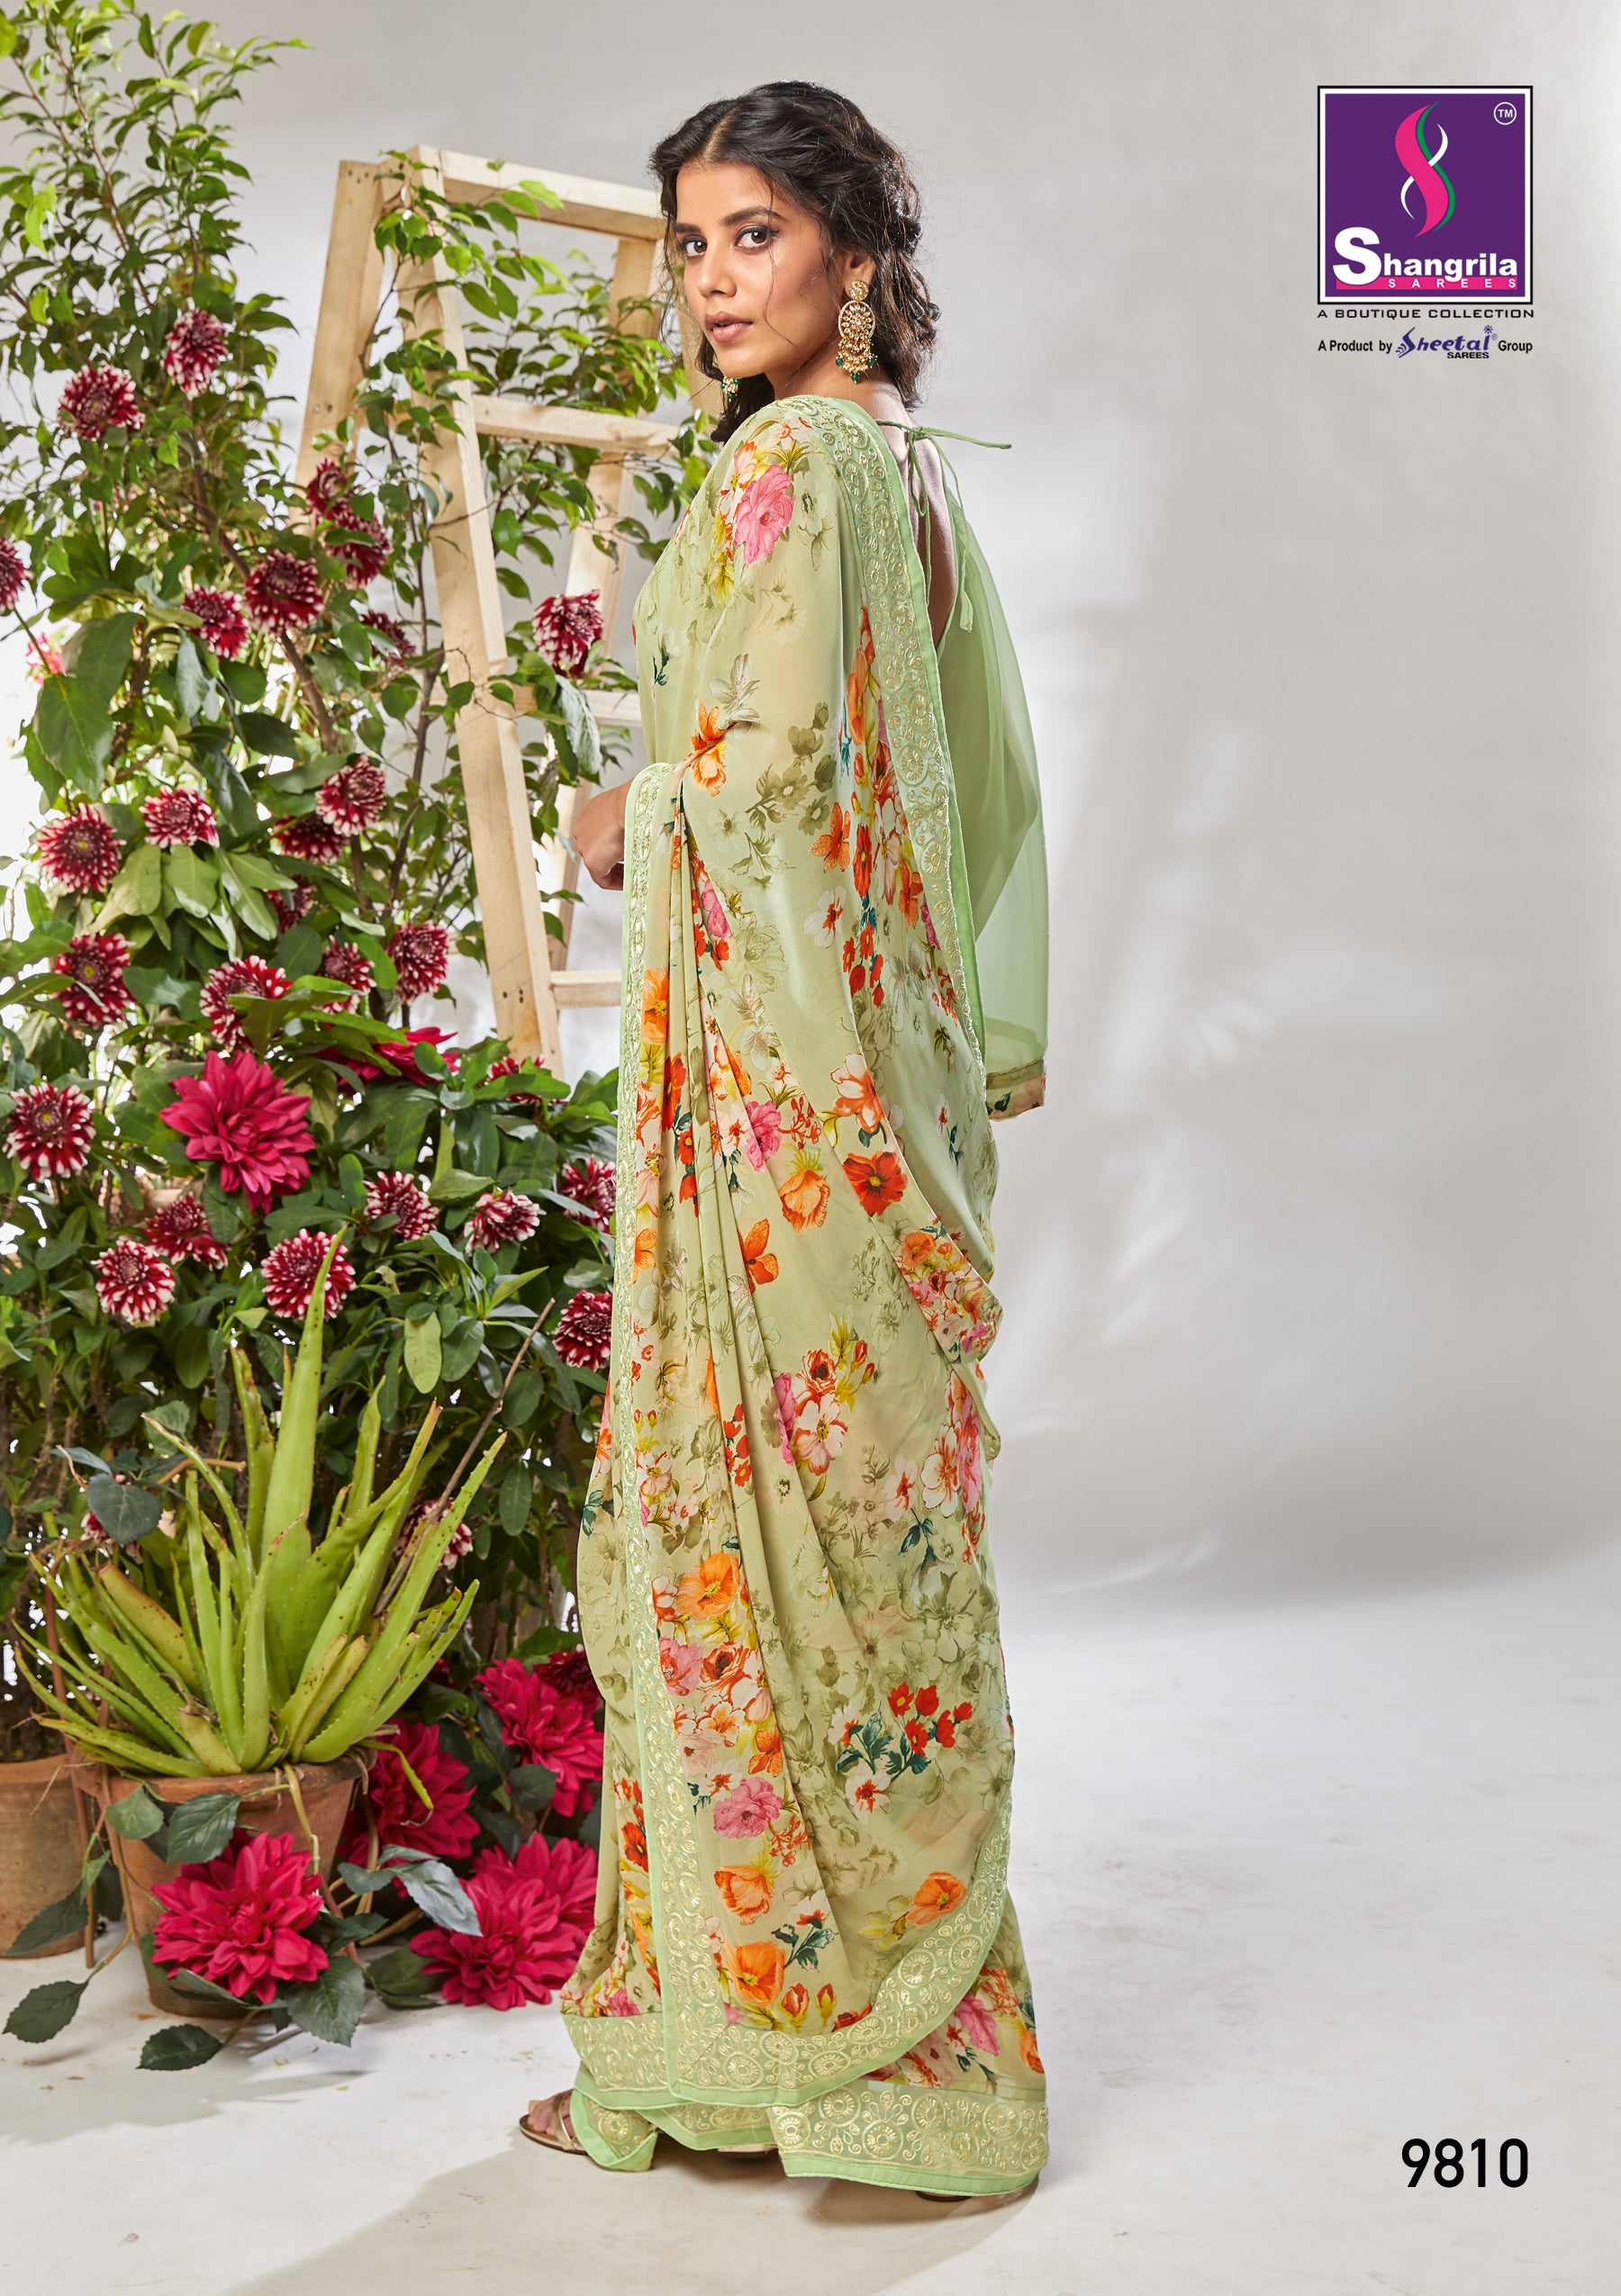 LIGHT GREEN PASTEL DIGITAL FLORAL PRINTED GOTA LACED FANCY GEORGETTE SAREE